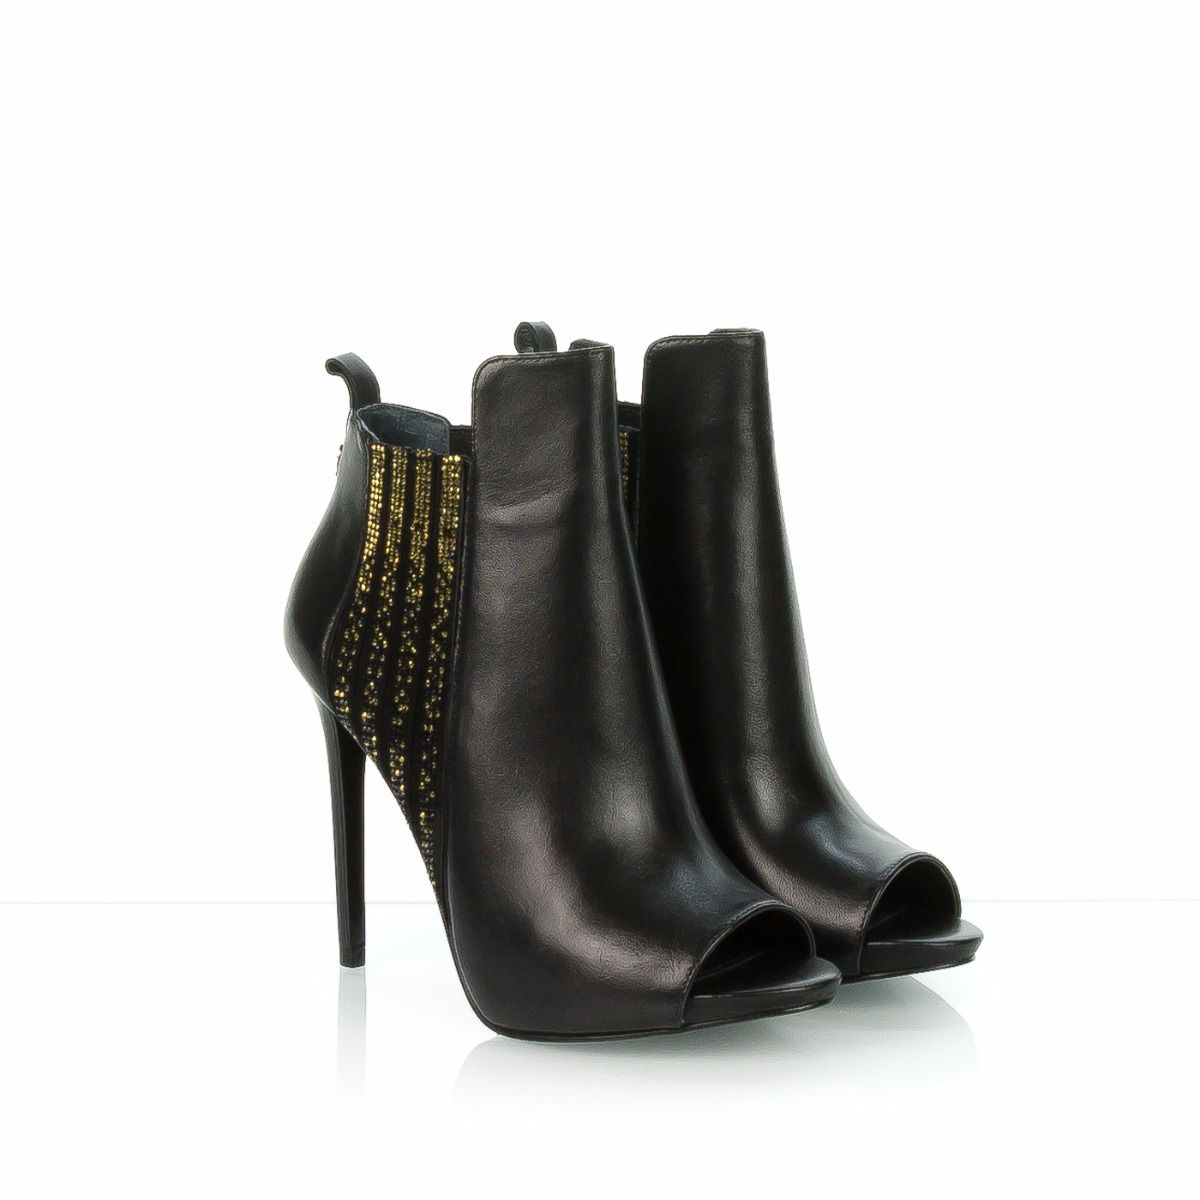 low priced cfaa8 9d669 GUESS TRONCHETTO DONNA FLABL3 NERO STRASS